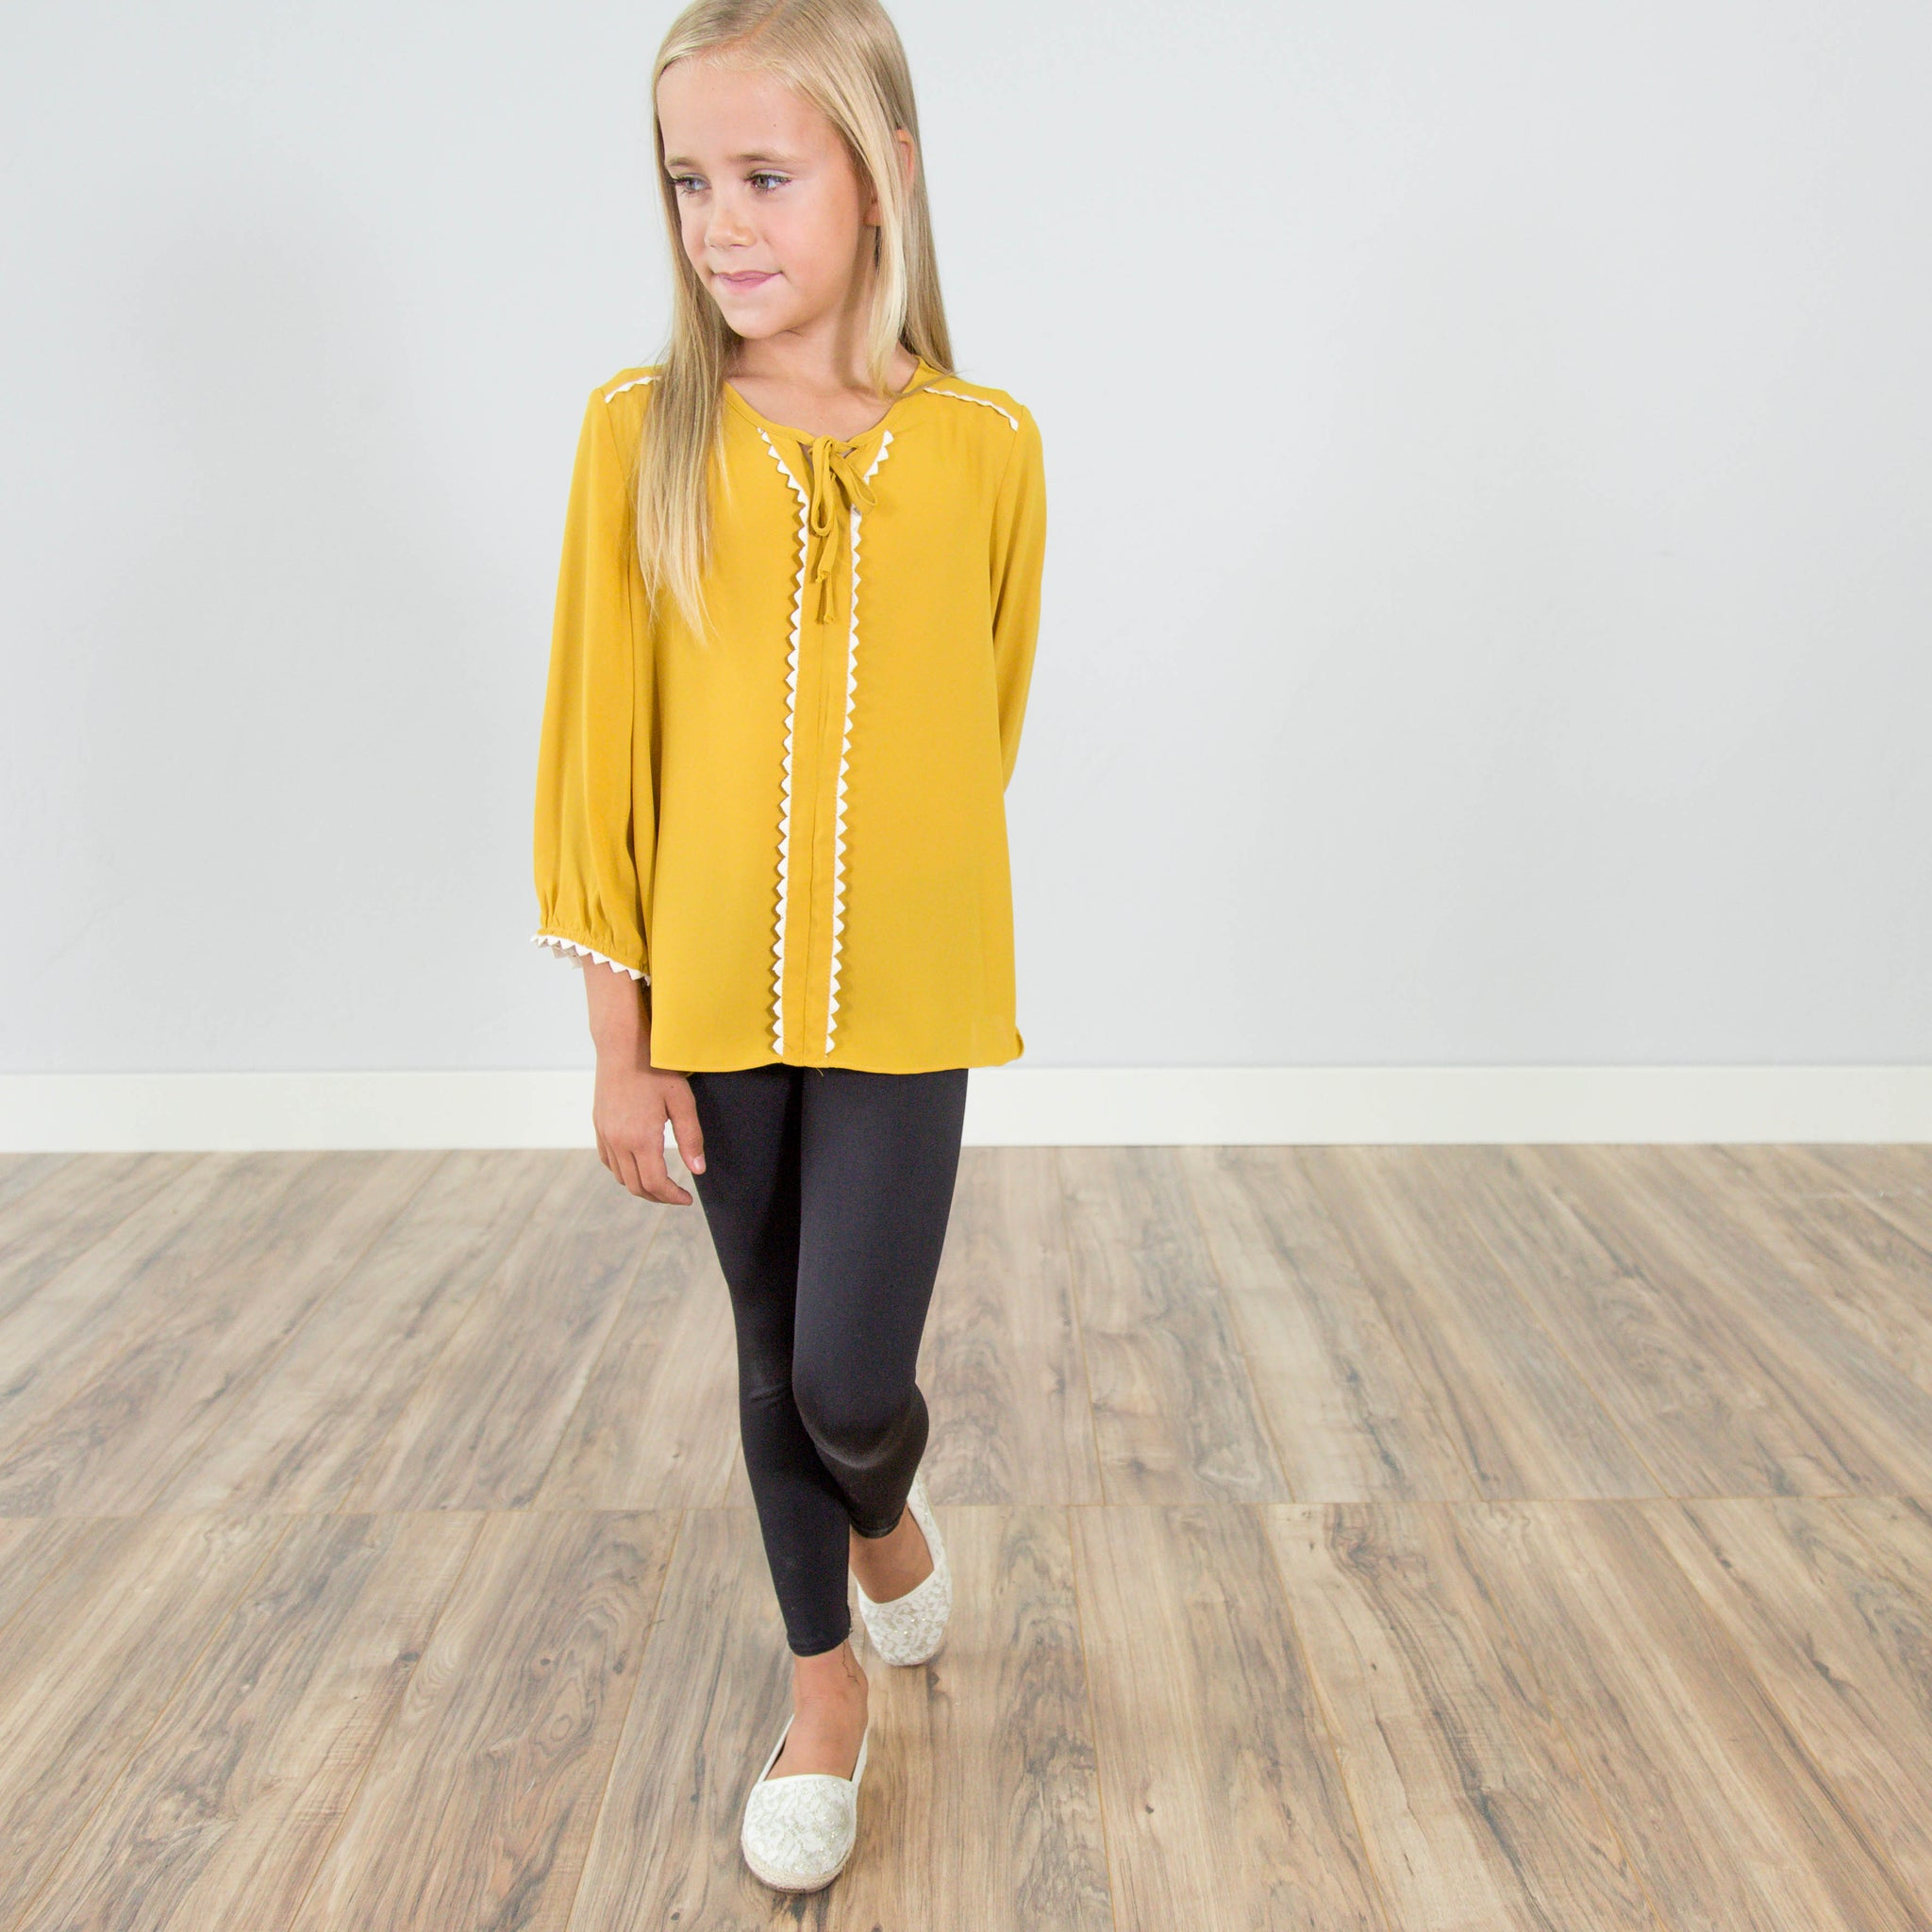 Evelyn Top in Mustard